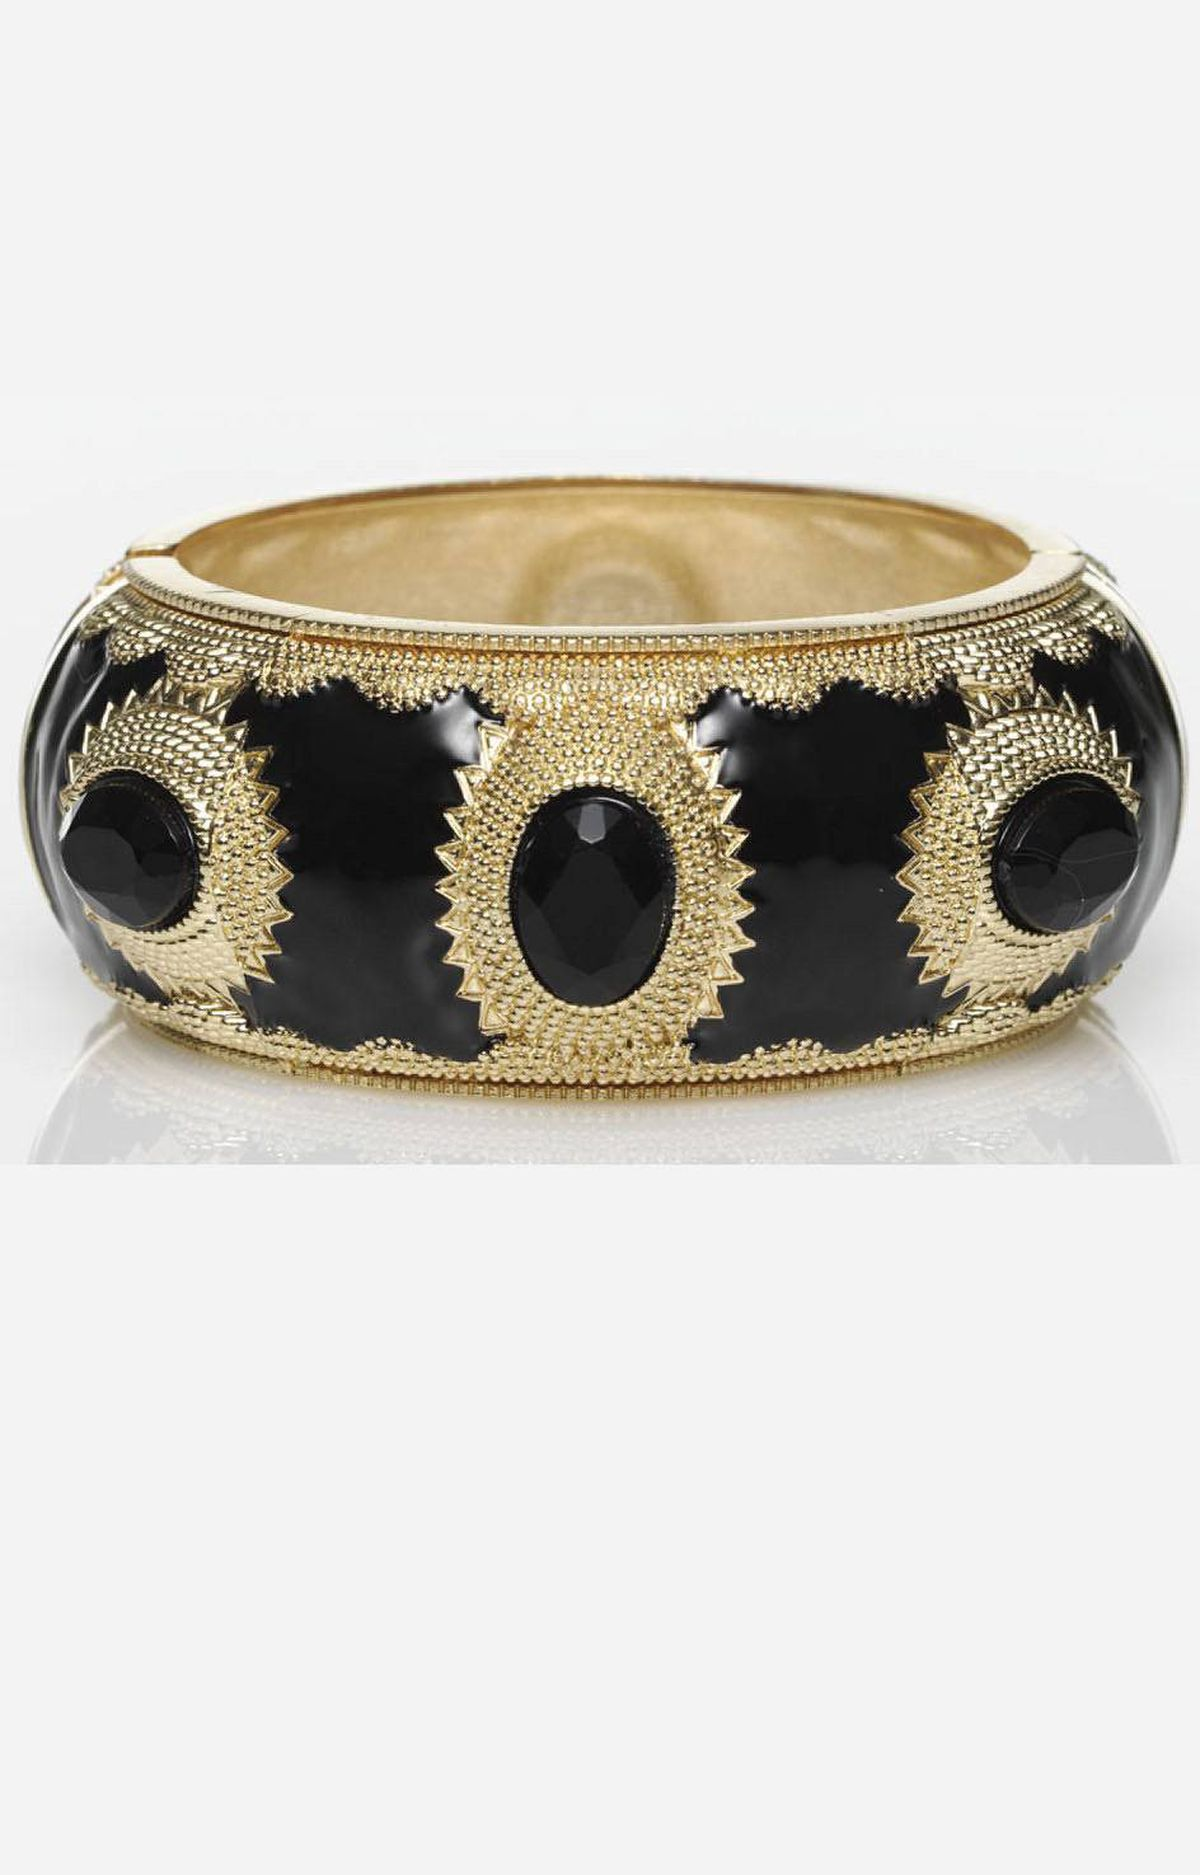 Black and gold bracelet by Expression, $30 at The Bay (www.thebay.com).